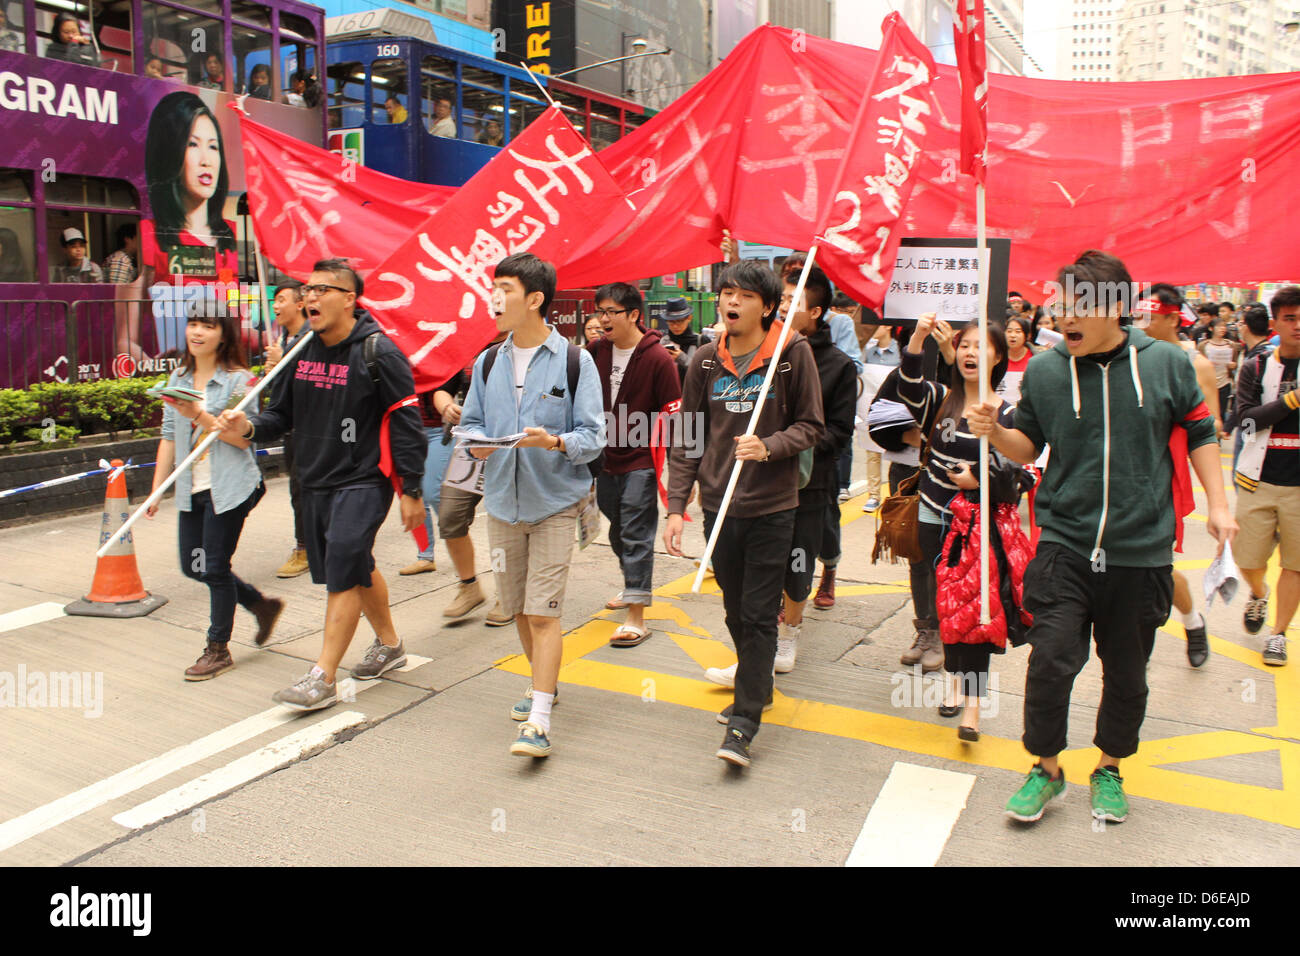 An image of Susan Li (from financial TV station Bloomberg) looks down in disbelief on a march by striking Hong Kong - Stock Image